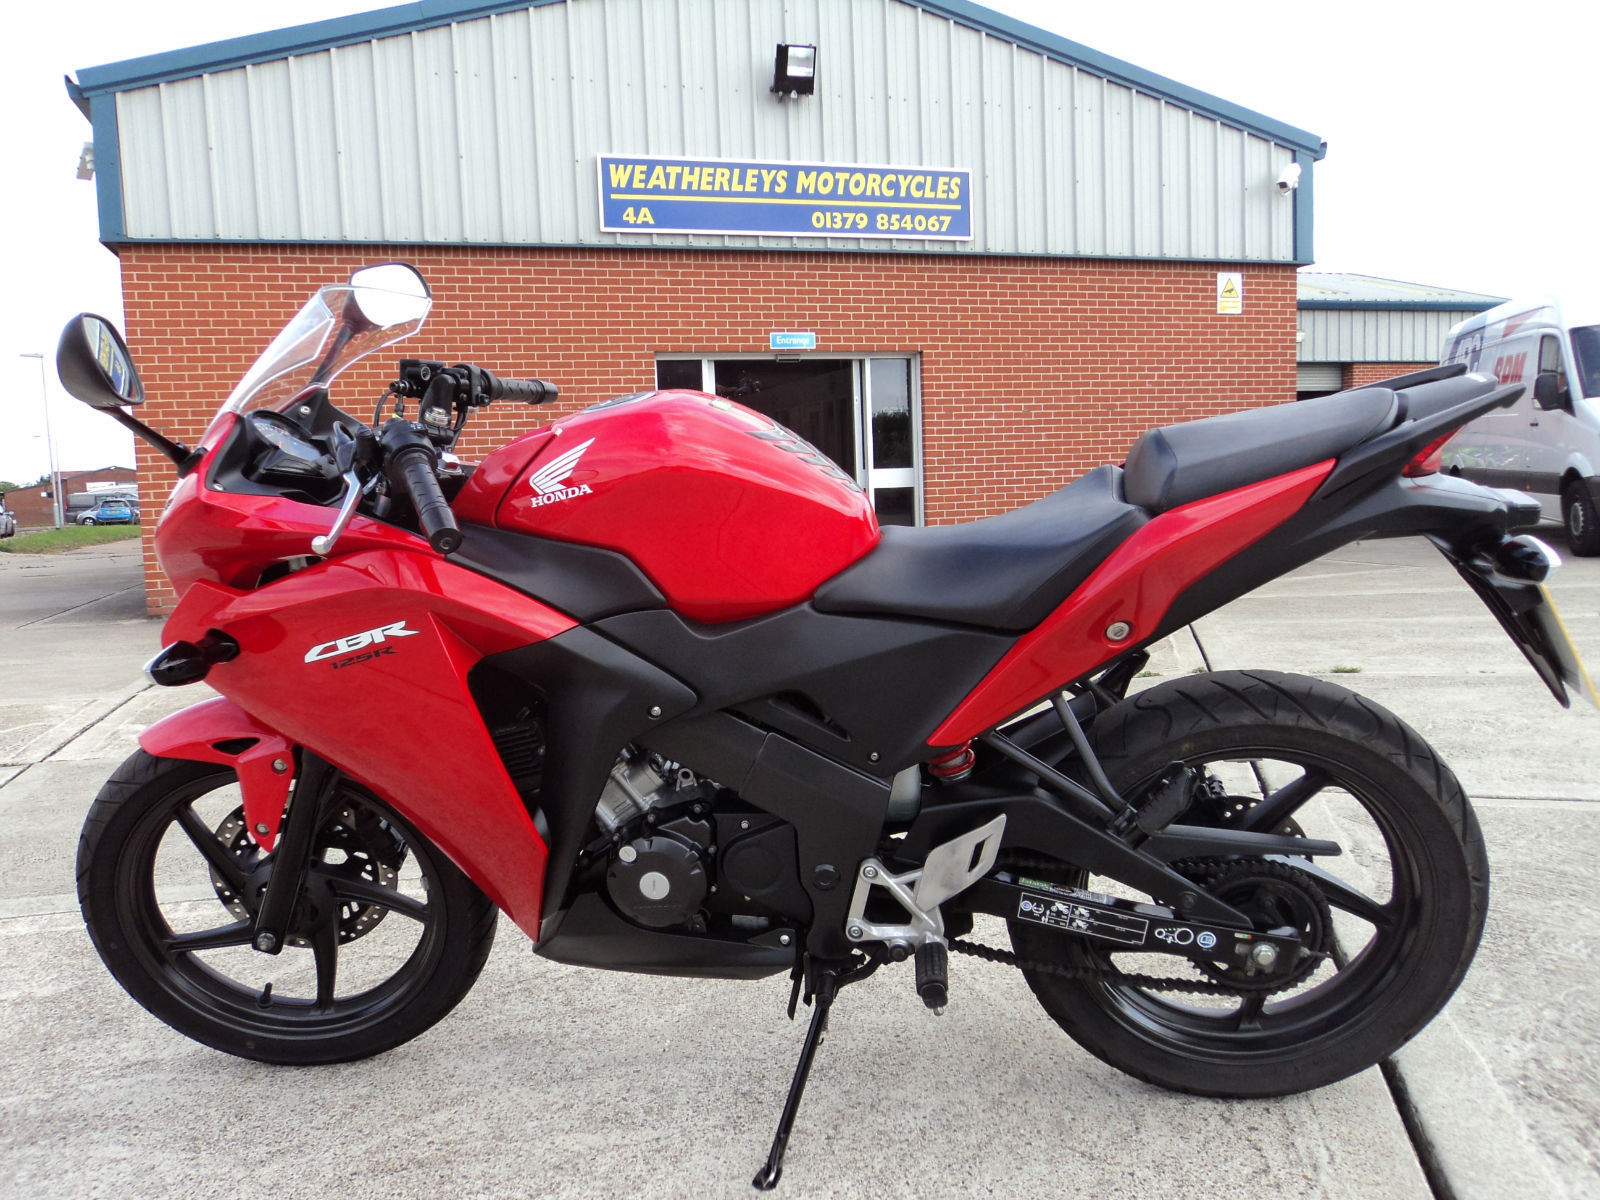 2013 honda cbr 125 r very good condition big saving on new price. Black Bedroom Furniture Sets. Home Design Ideas